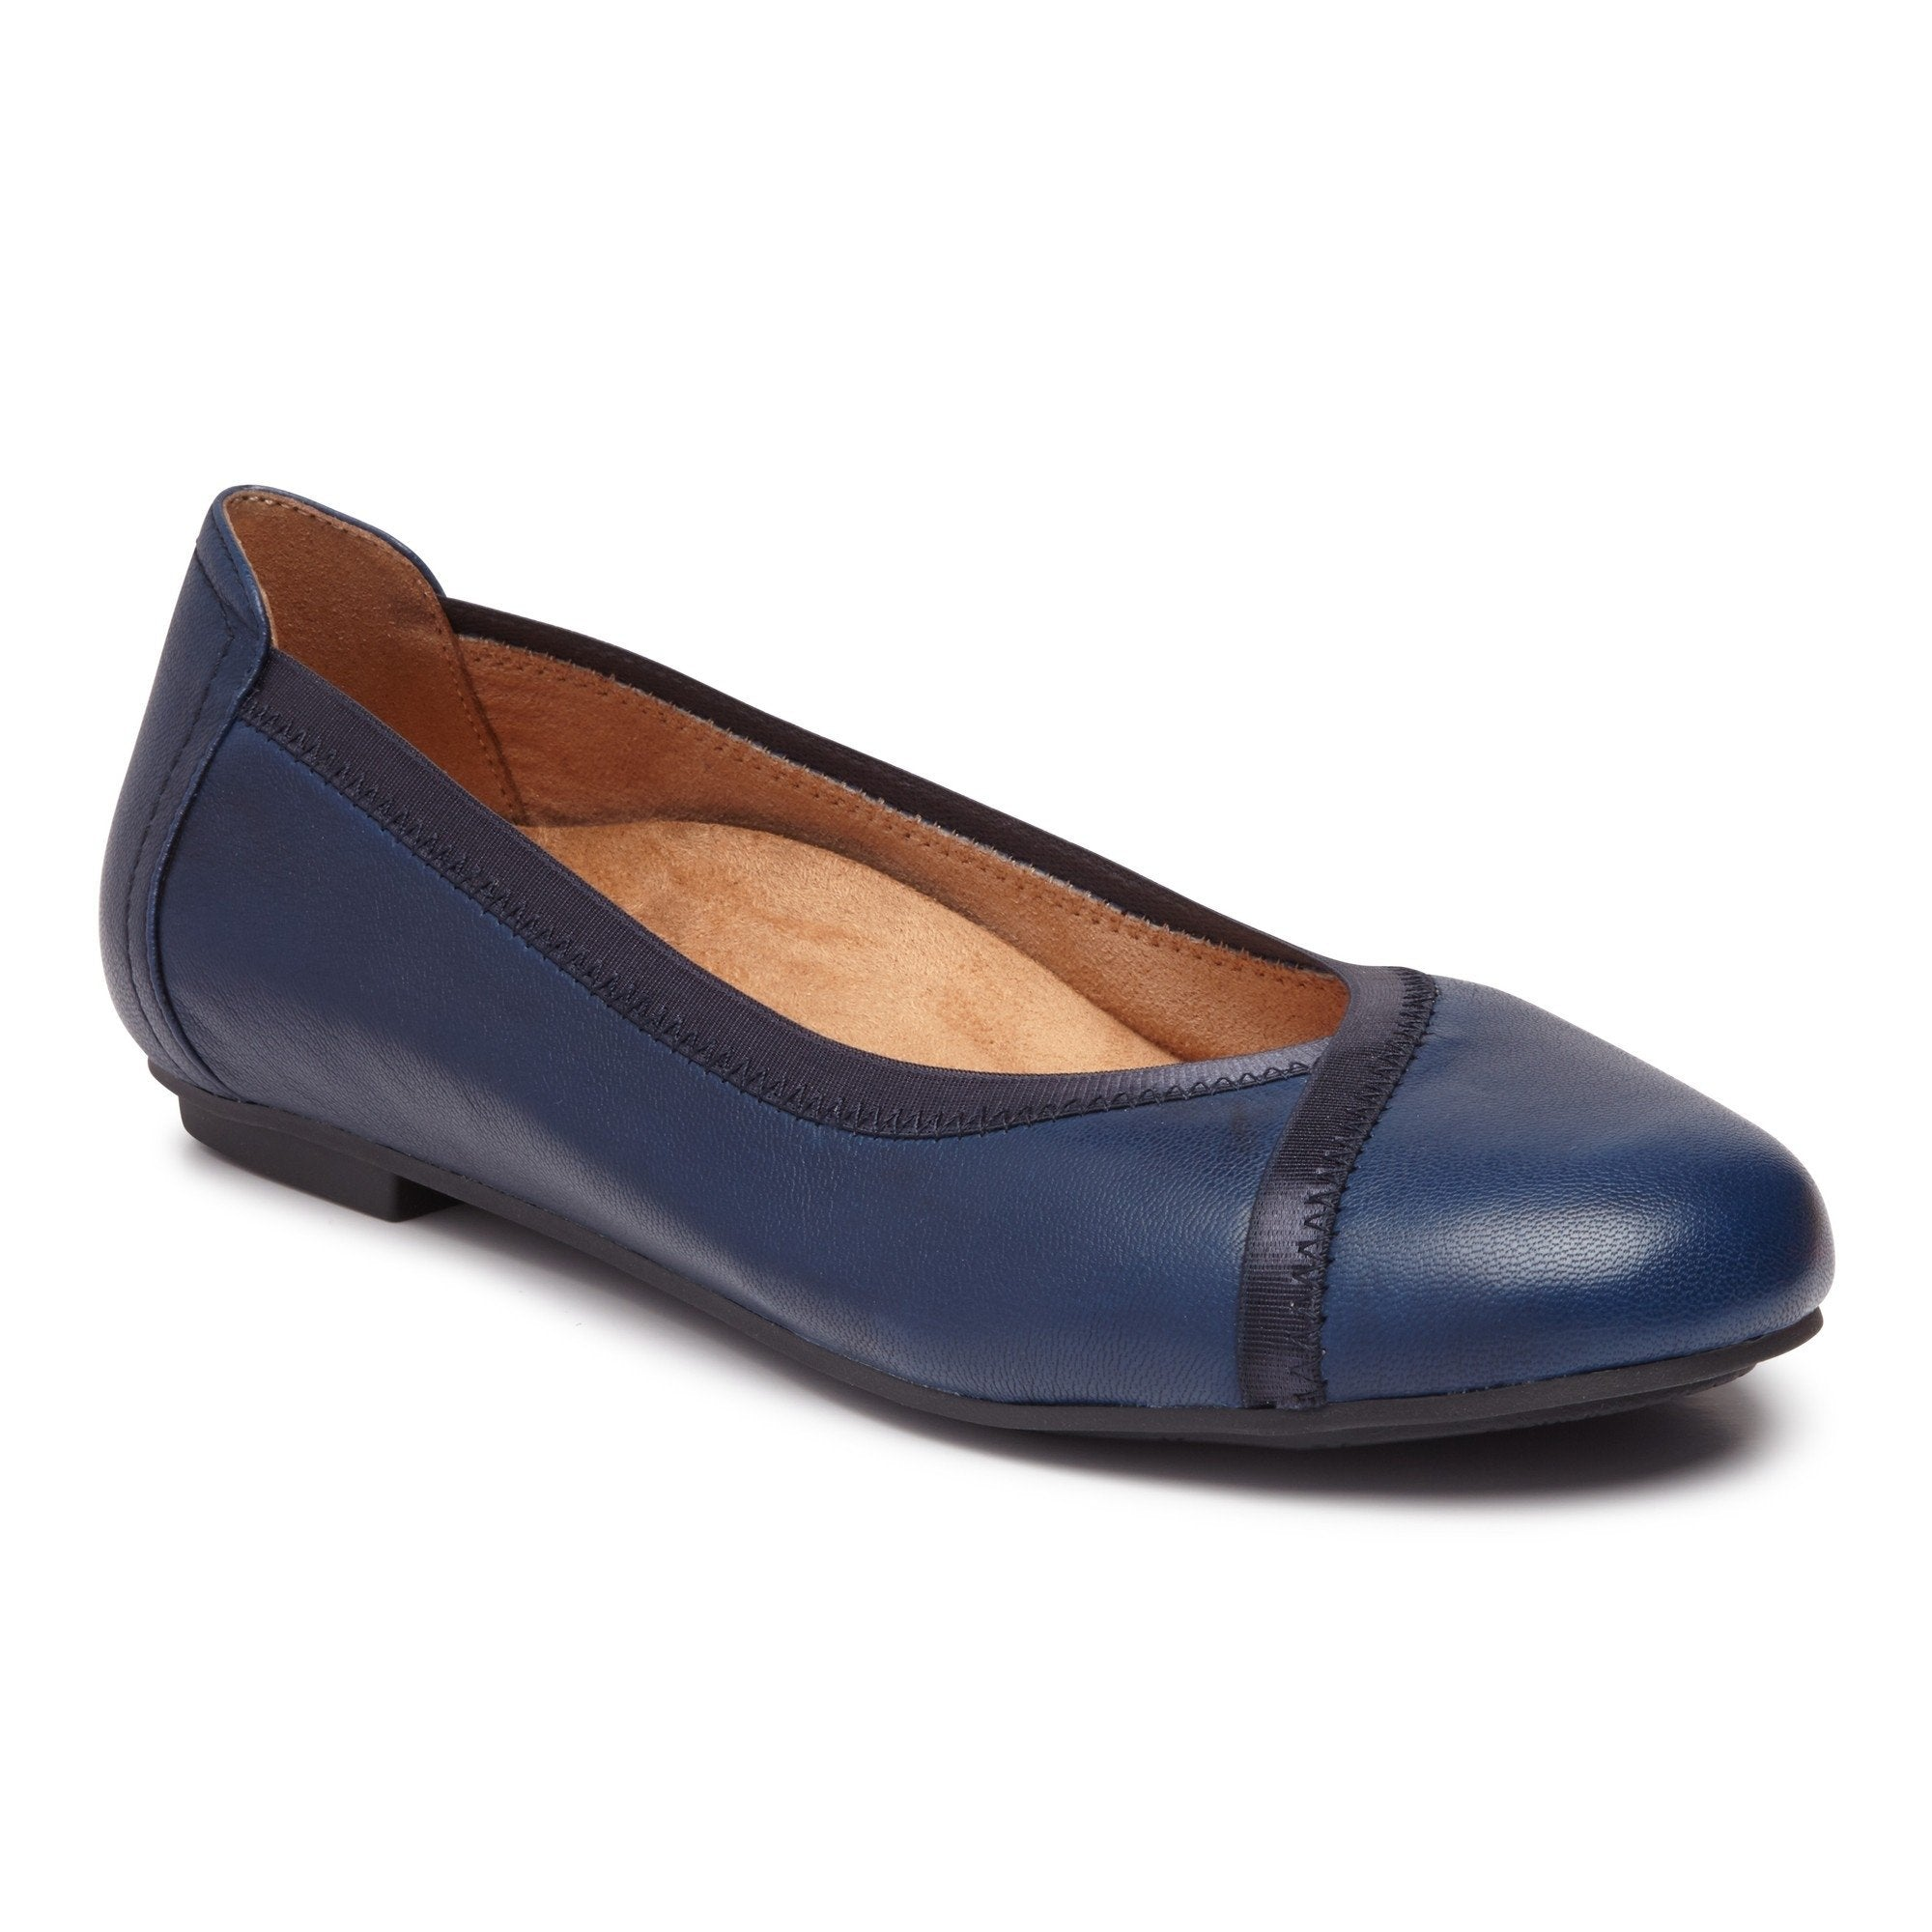 SPARK CAROLL NAVY (Sizes 8.5 only) - Molly's! A Chic and Unique Boutique